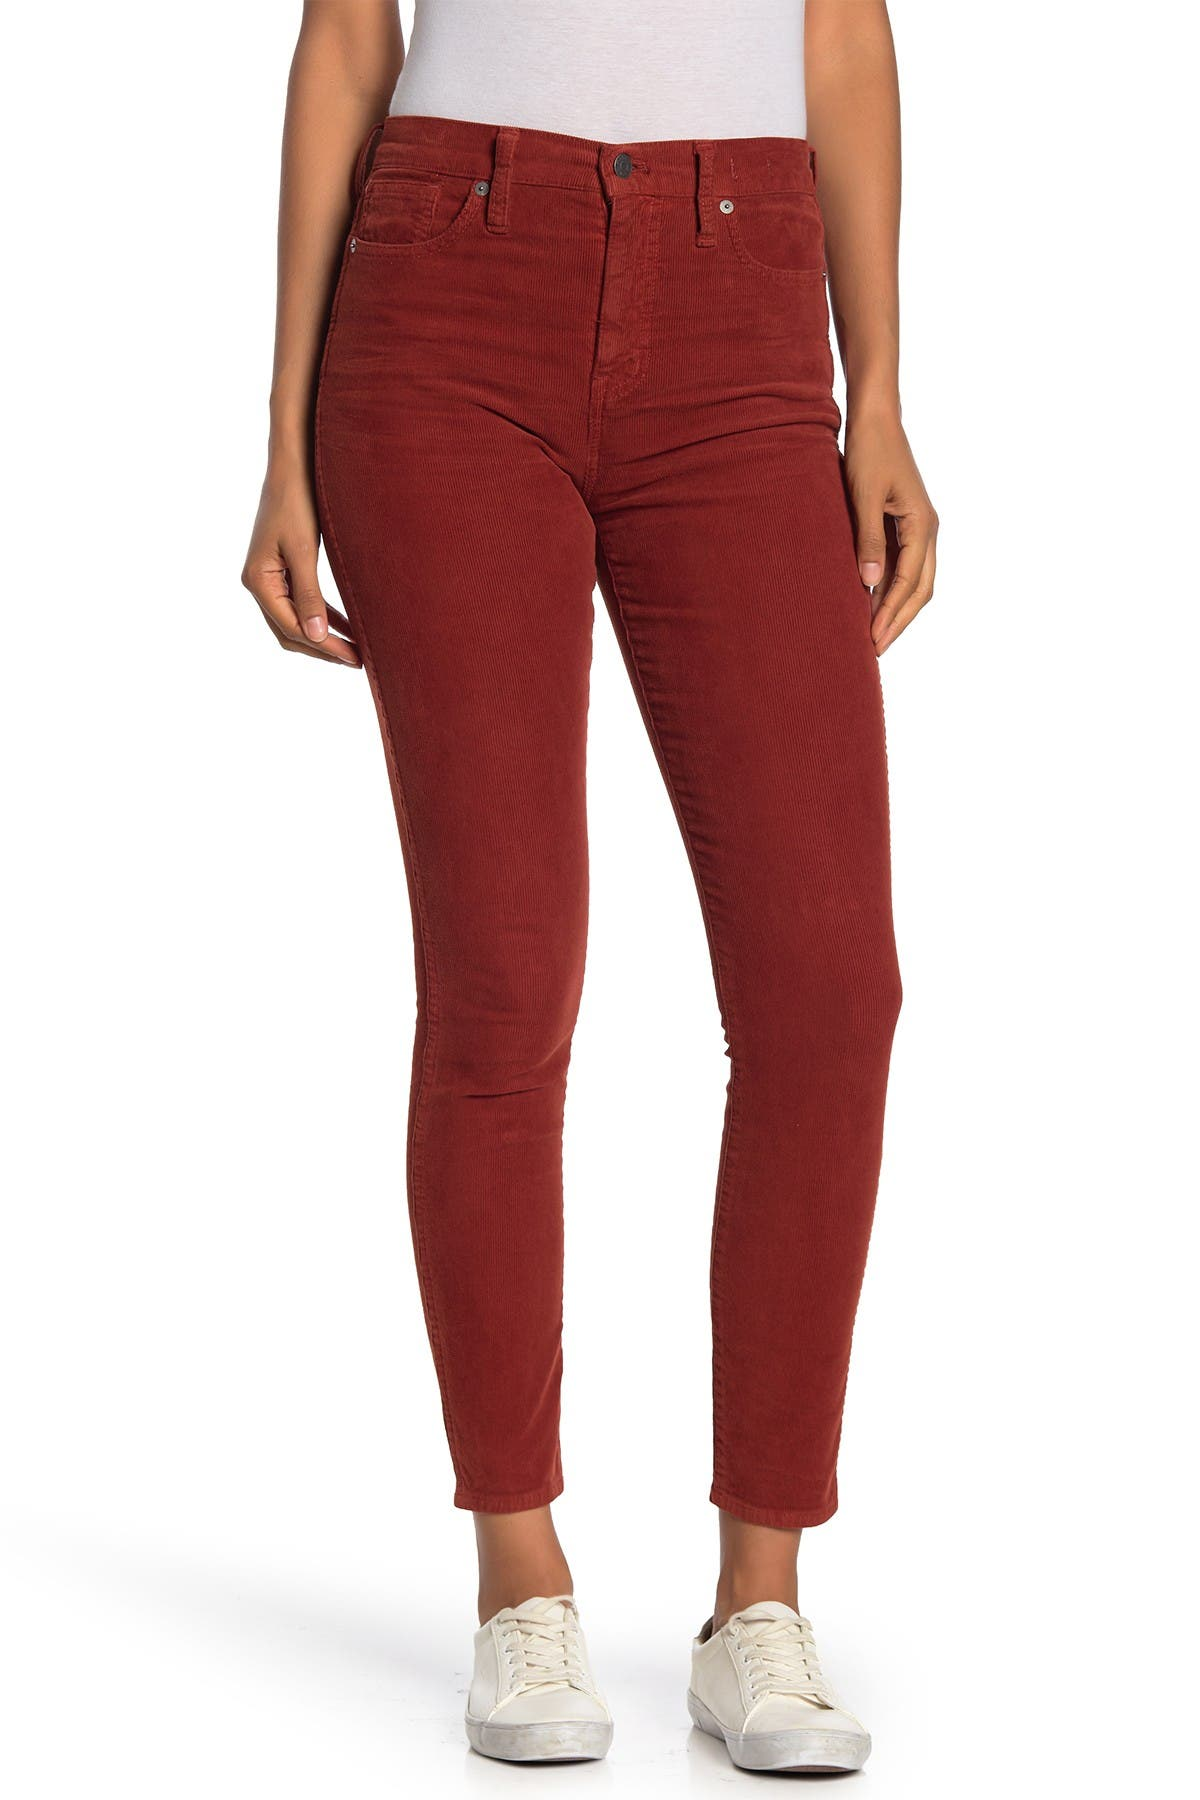 Image of Madewell High Rise Corduroy Crop Skinny Jeans